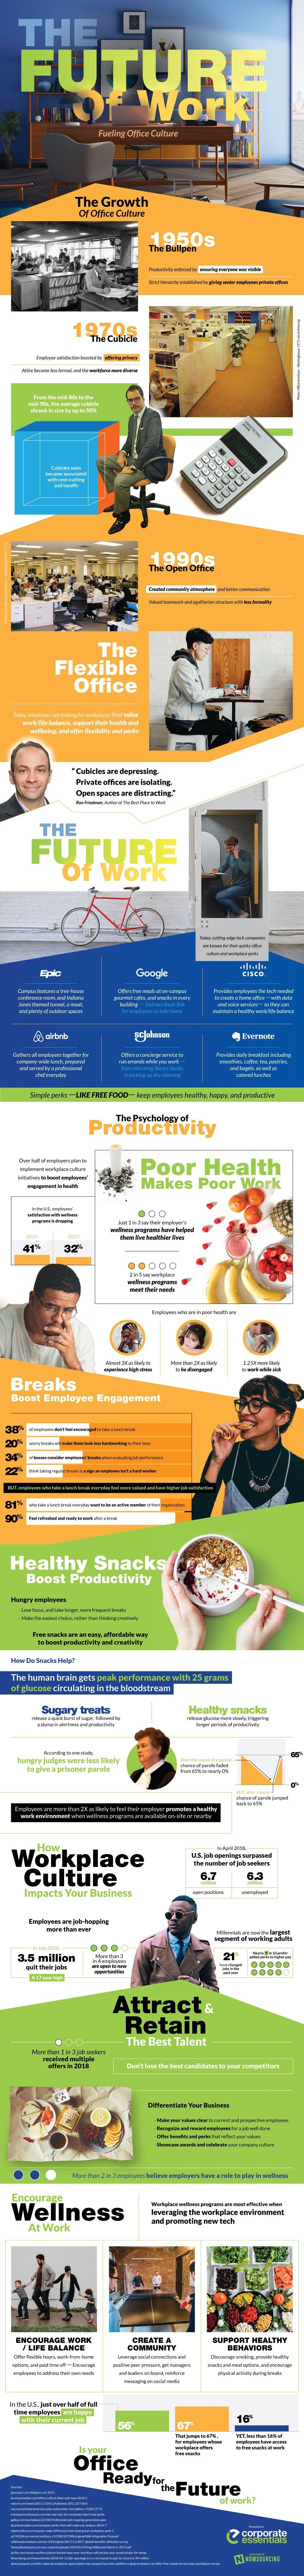 Are Snacks The Key To Office Success? #infographic